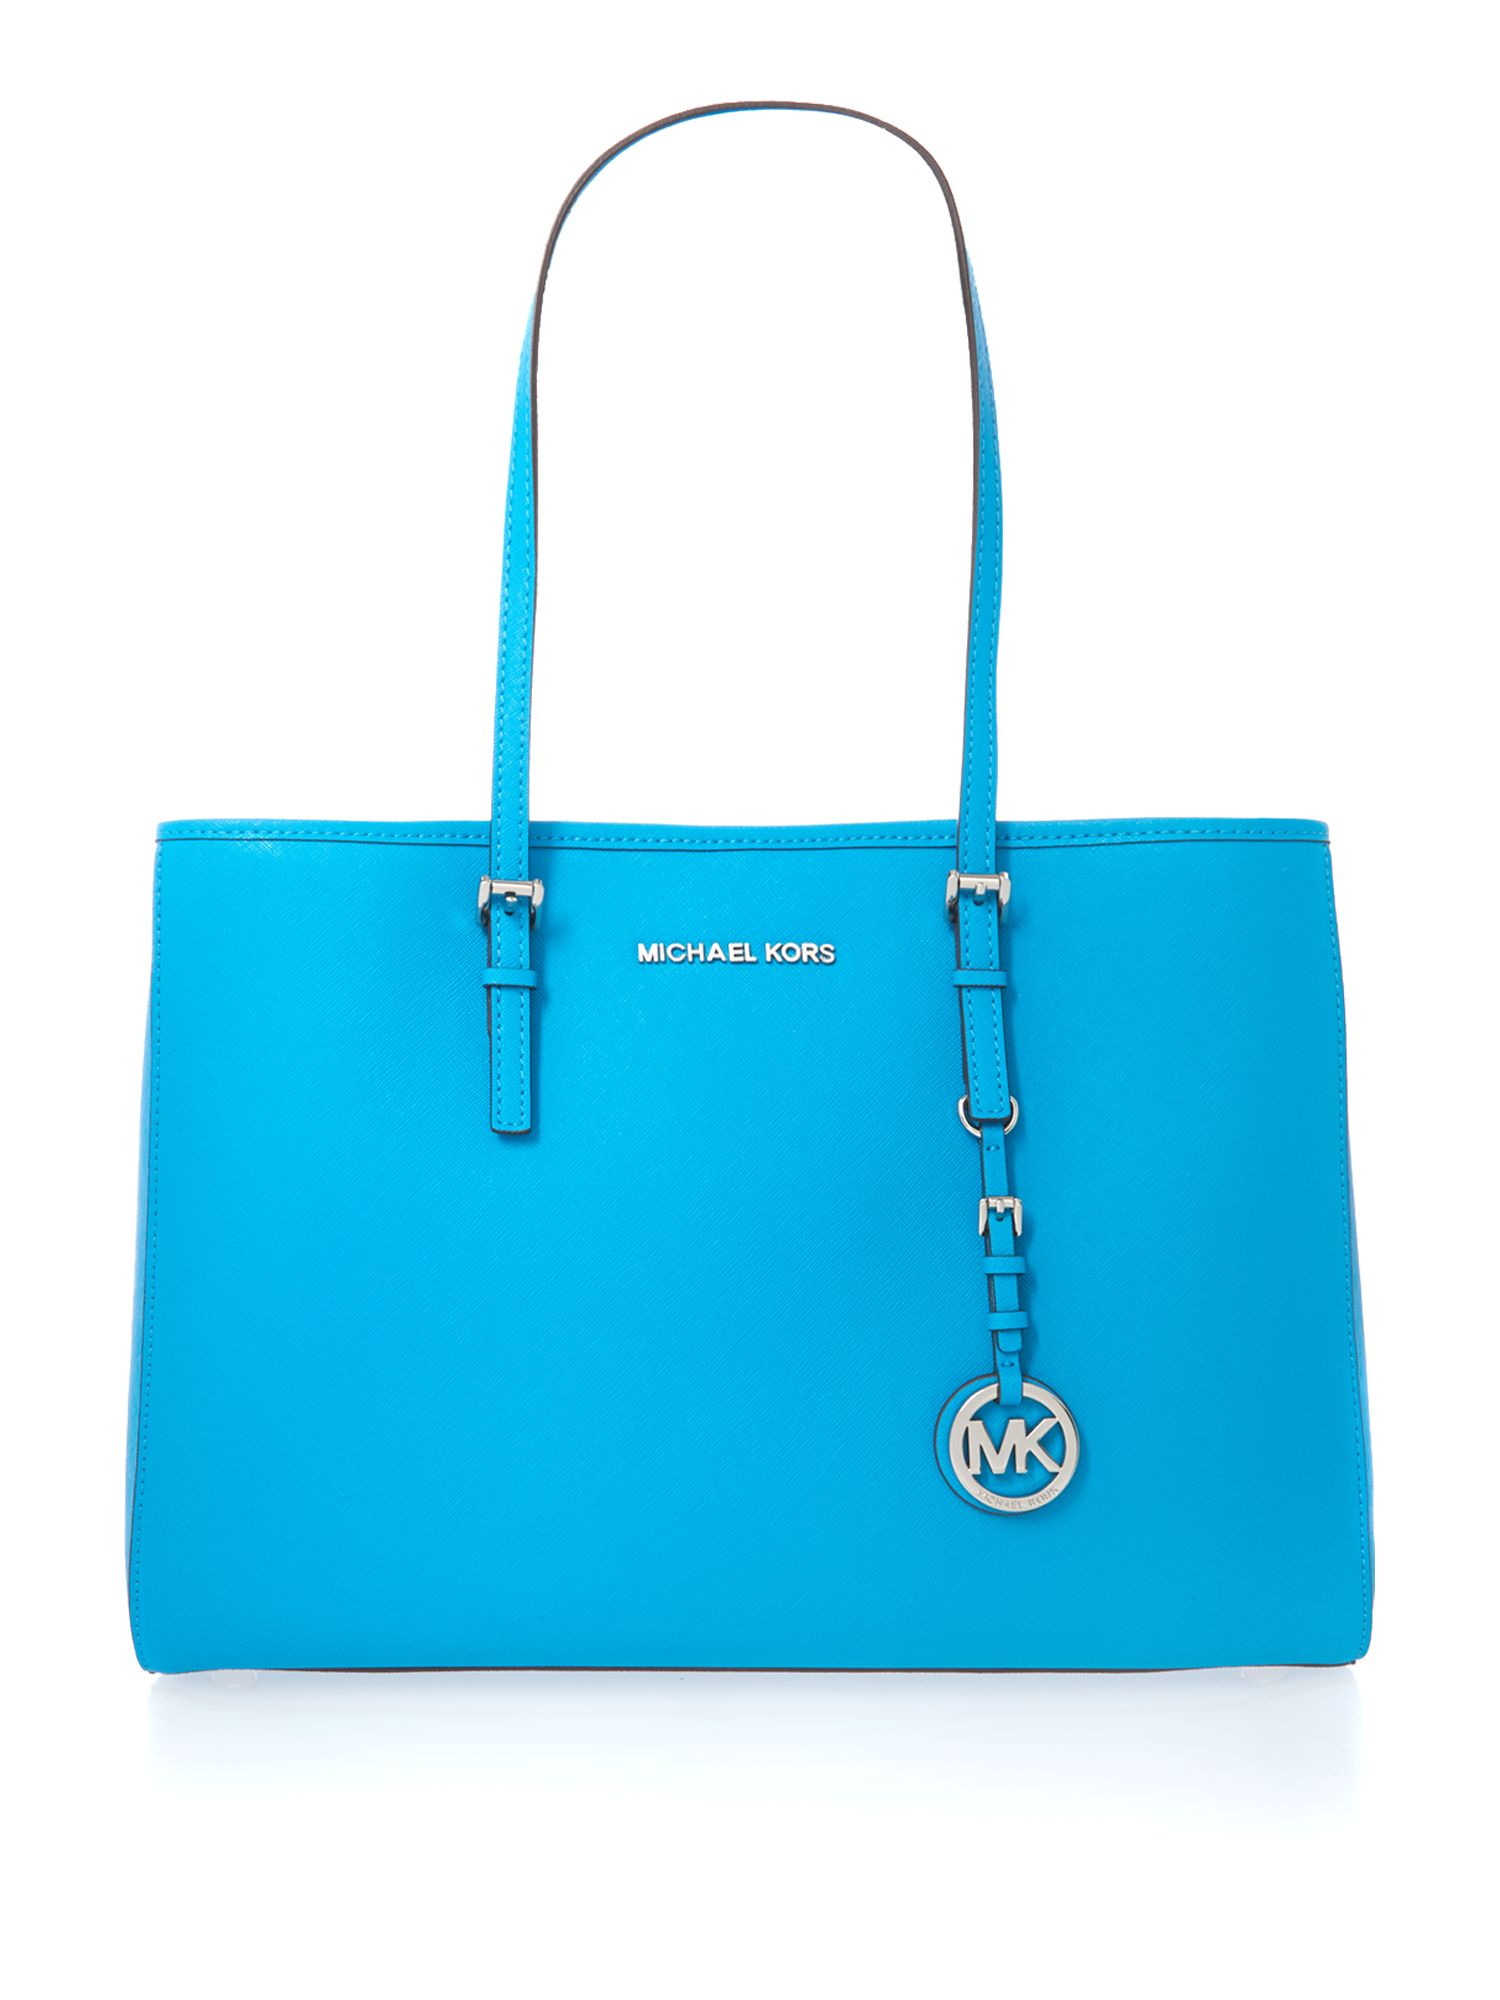 Jet Set Travel blue medium tote bag